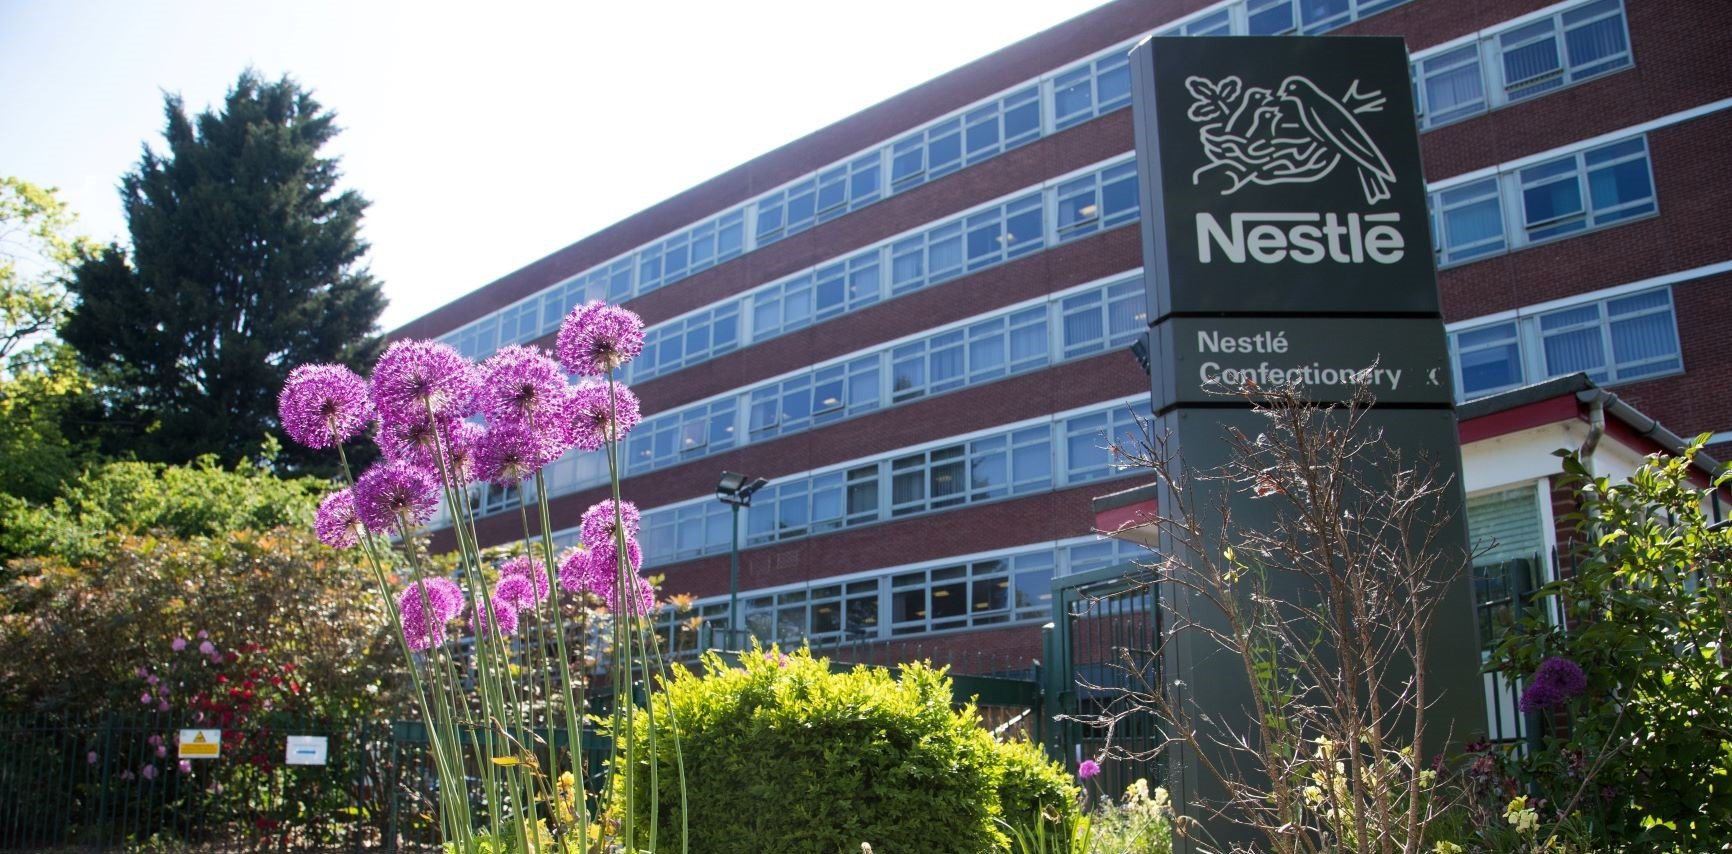 Nestlé announces £9 million office upgrade to create new post-pandemic workplace